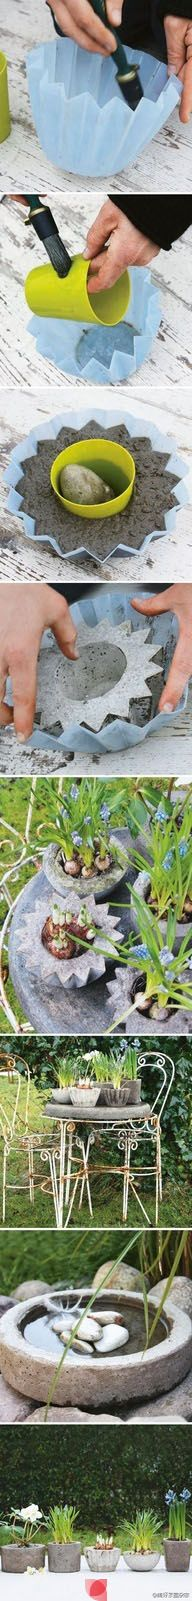 Concrete Planter Idea